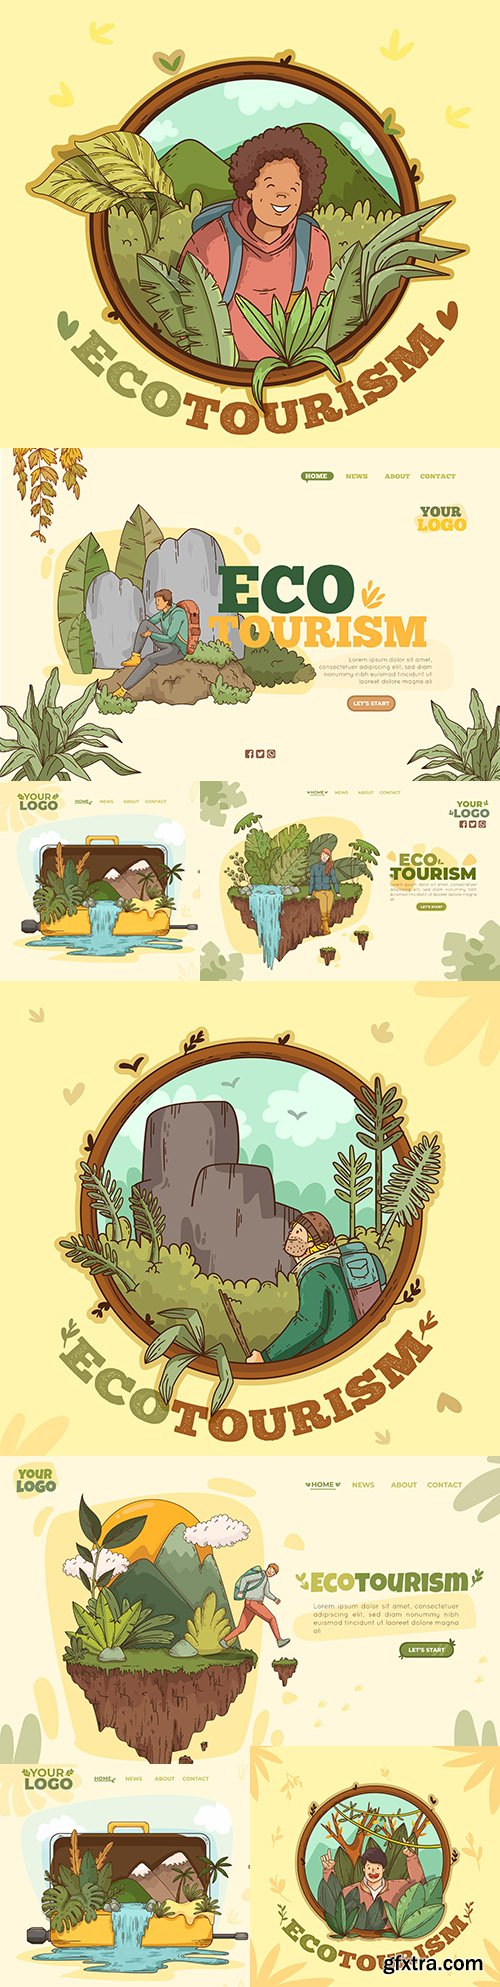 Eco tourism template landing page design